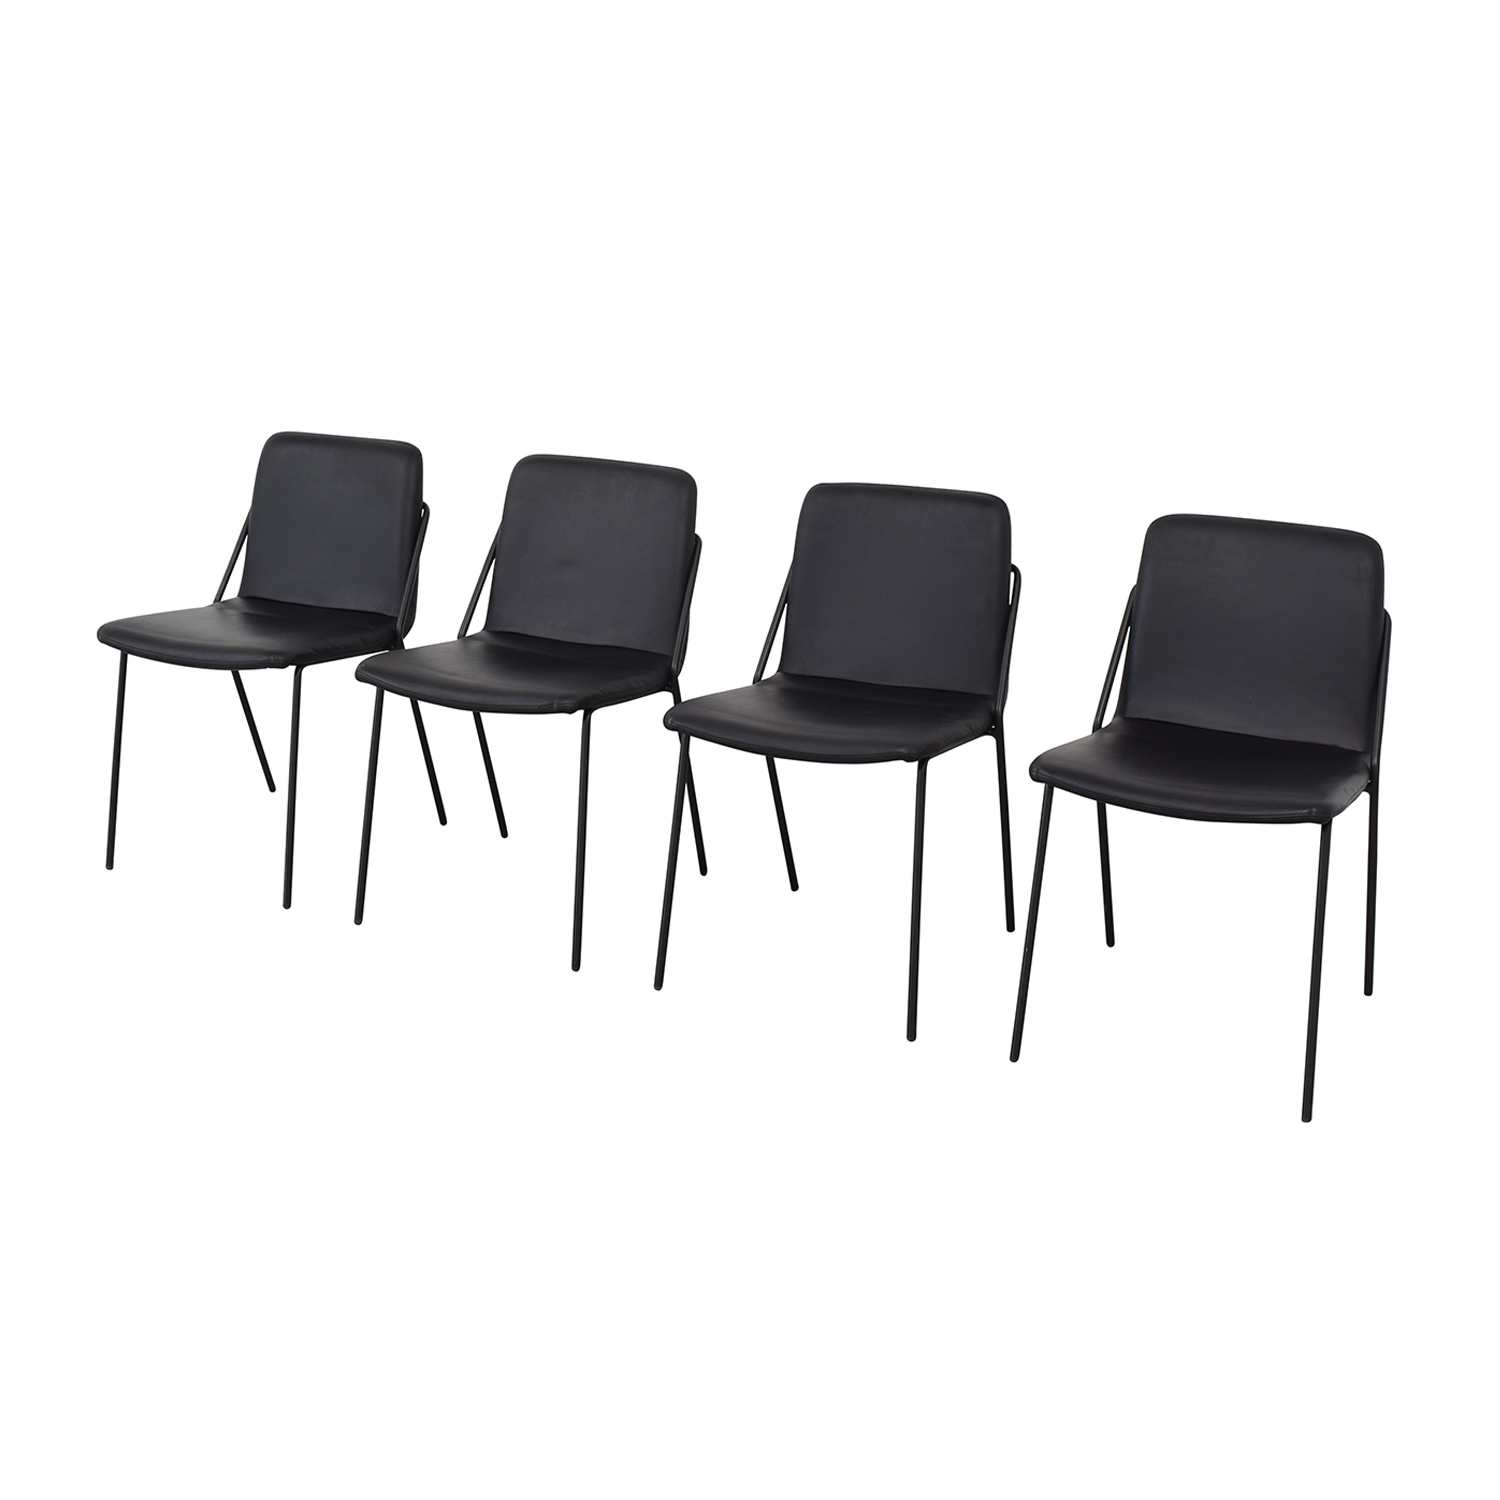 m.a.d. m.a.d. Black Sling Upholstered Chairs second hand